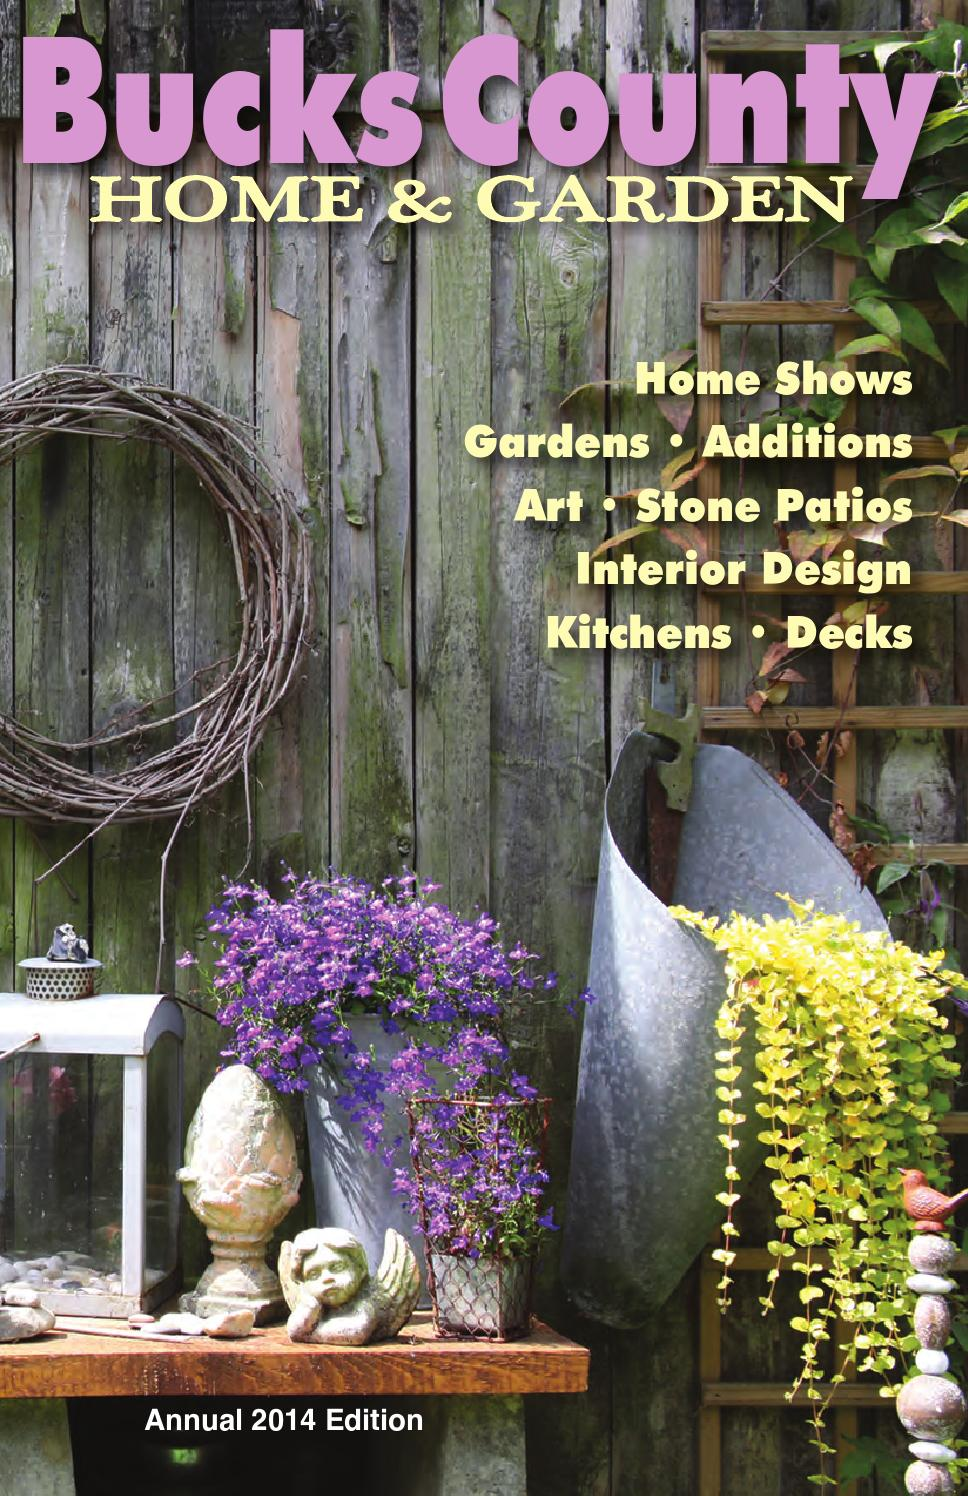 Bucks county home garden annual 2014 edition by bcm for Craft shows in bucks county pa